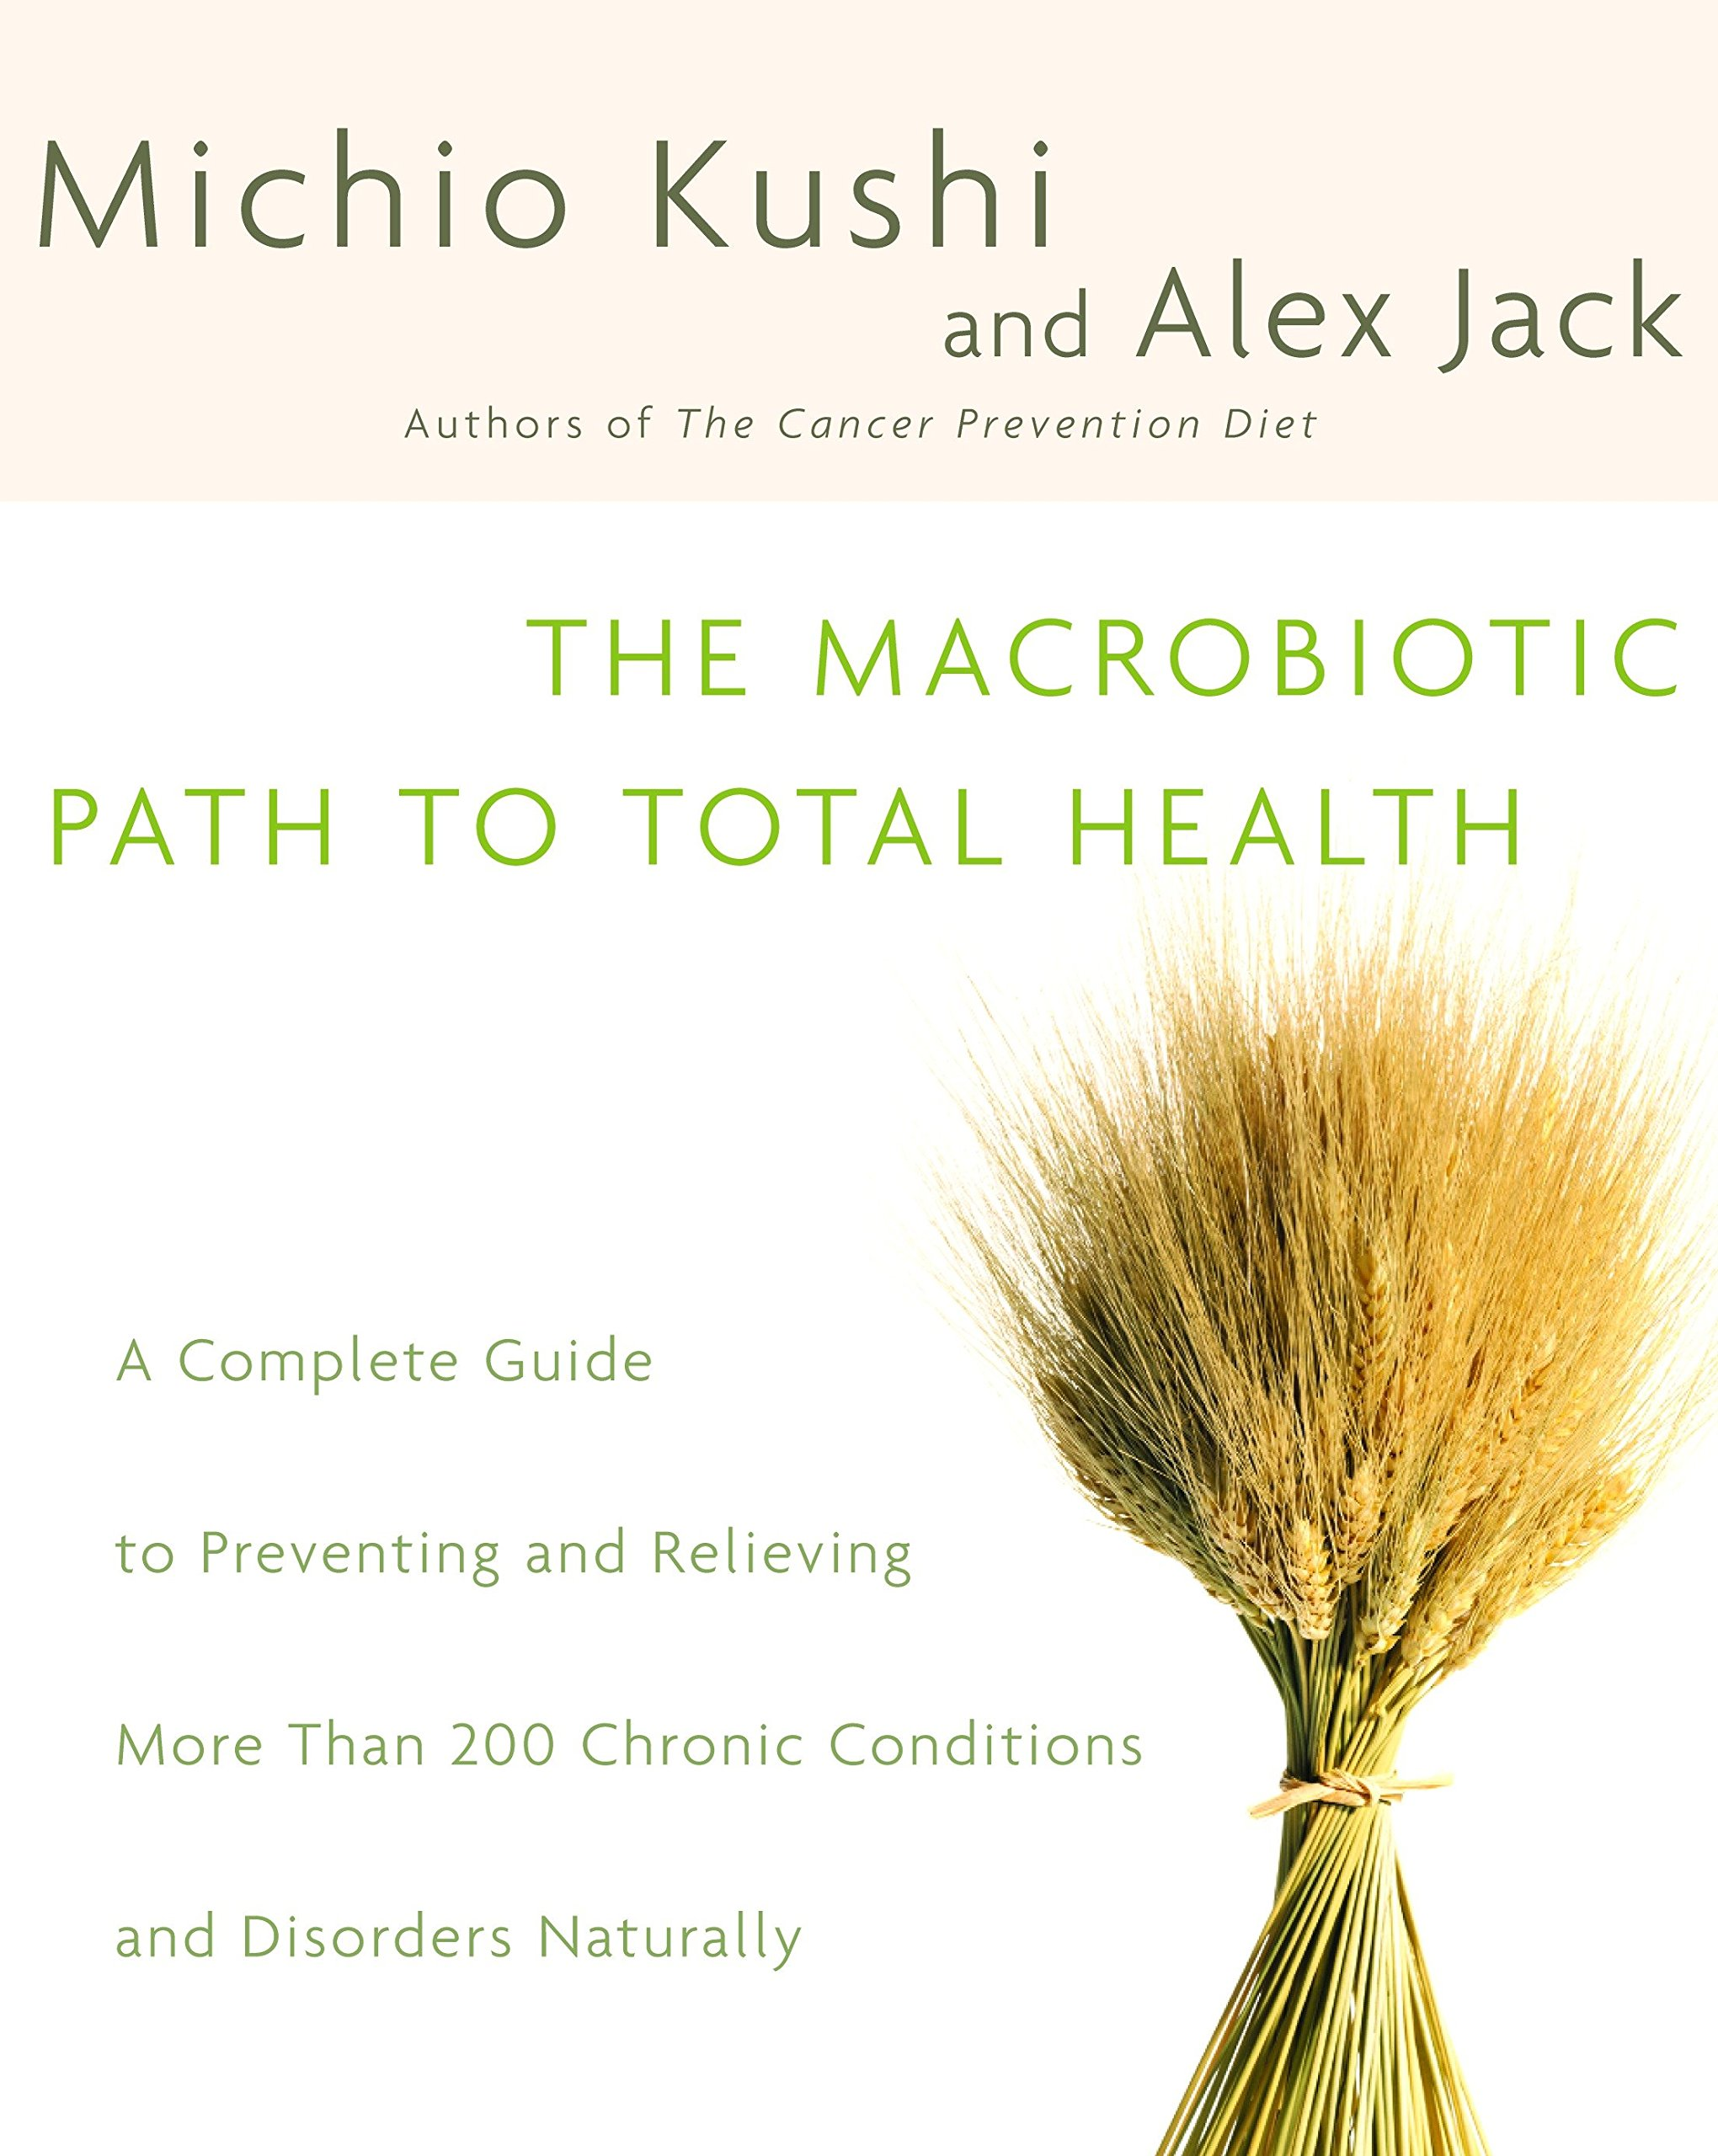 The Macrobiotic Path to Total Health: A Complete Guide to Naturally Preventing and Relieving More Than 200 Chronic Conditions and Disorders ebook